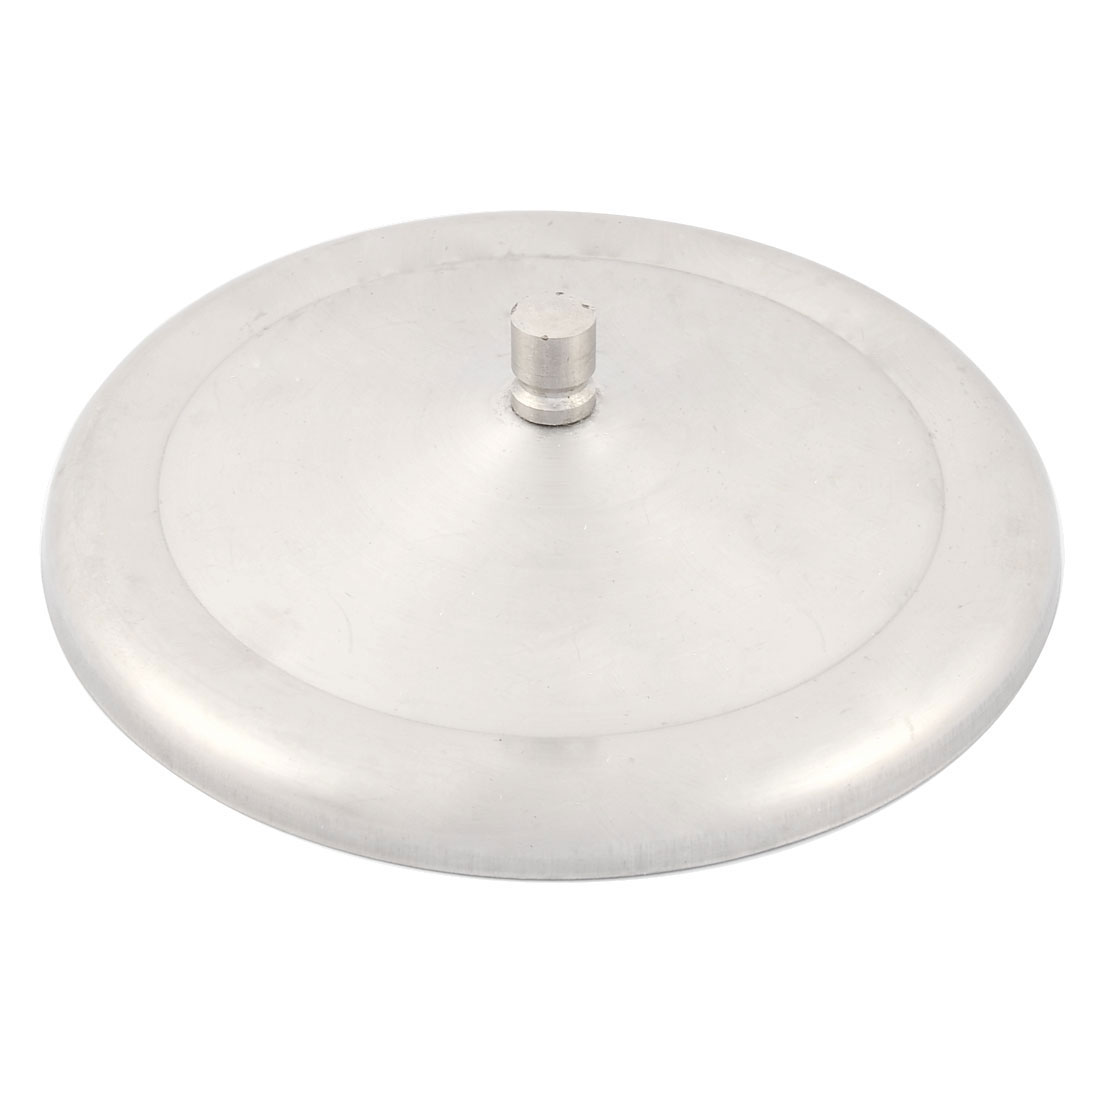 Household Stainless Steel Tea Coffee Cup Lid Cover Silver Tone 12.3cm Diameter